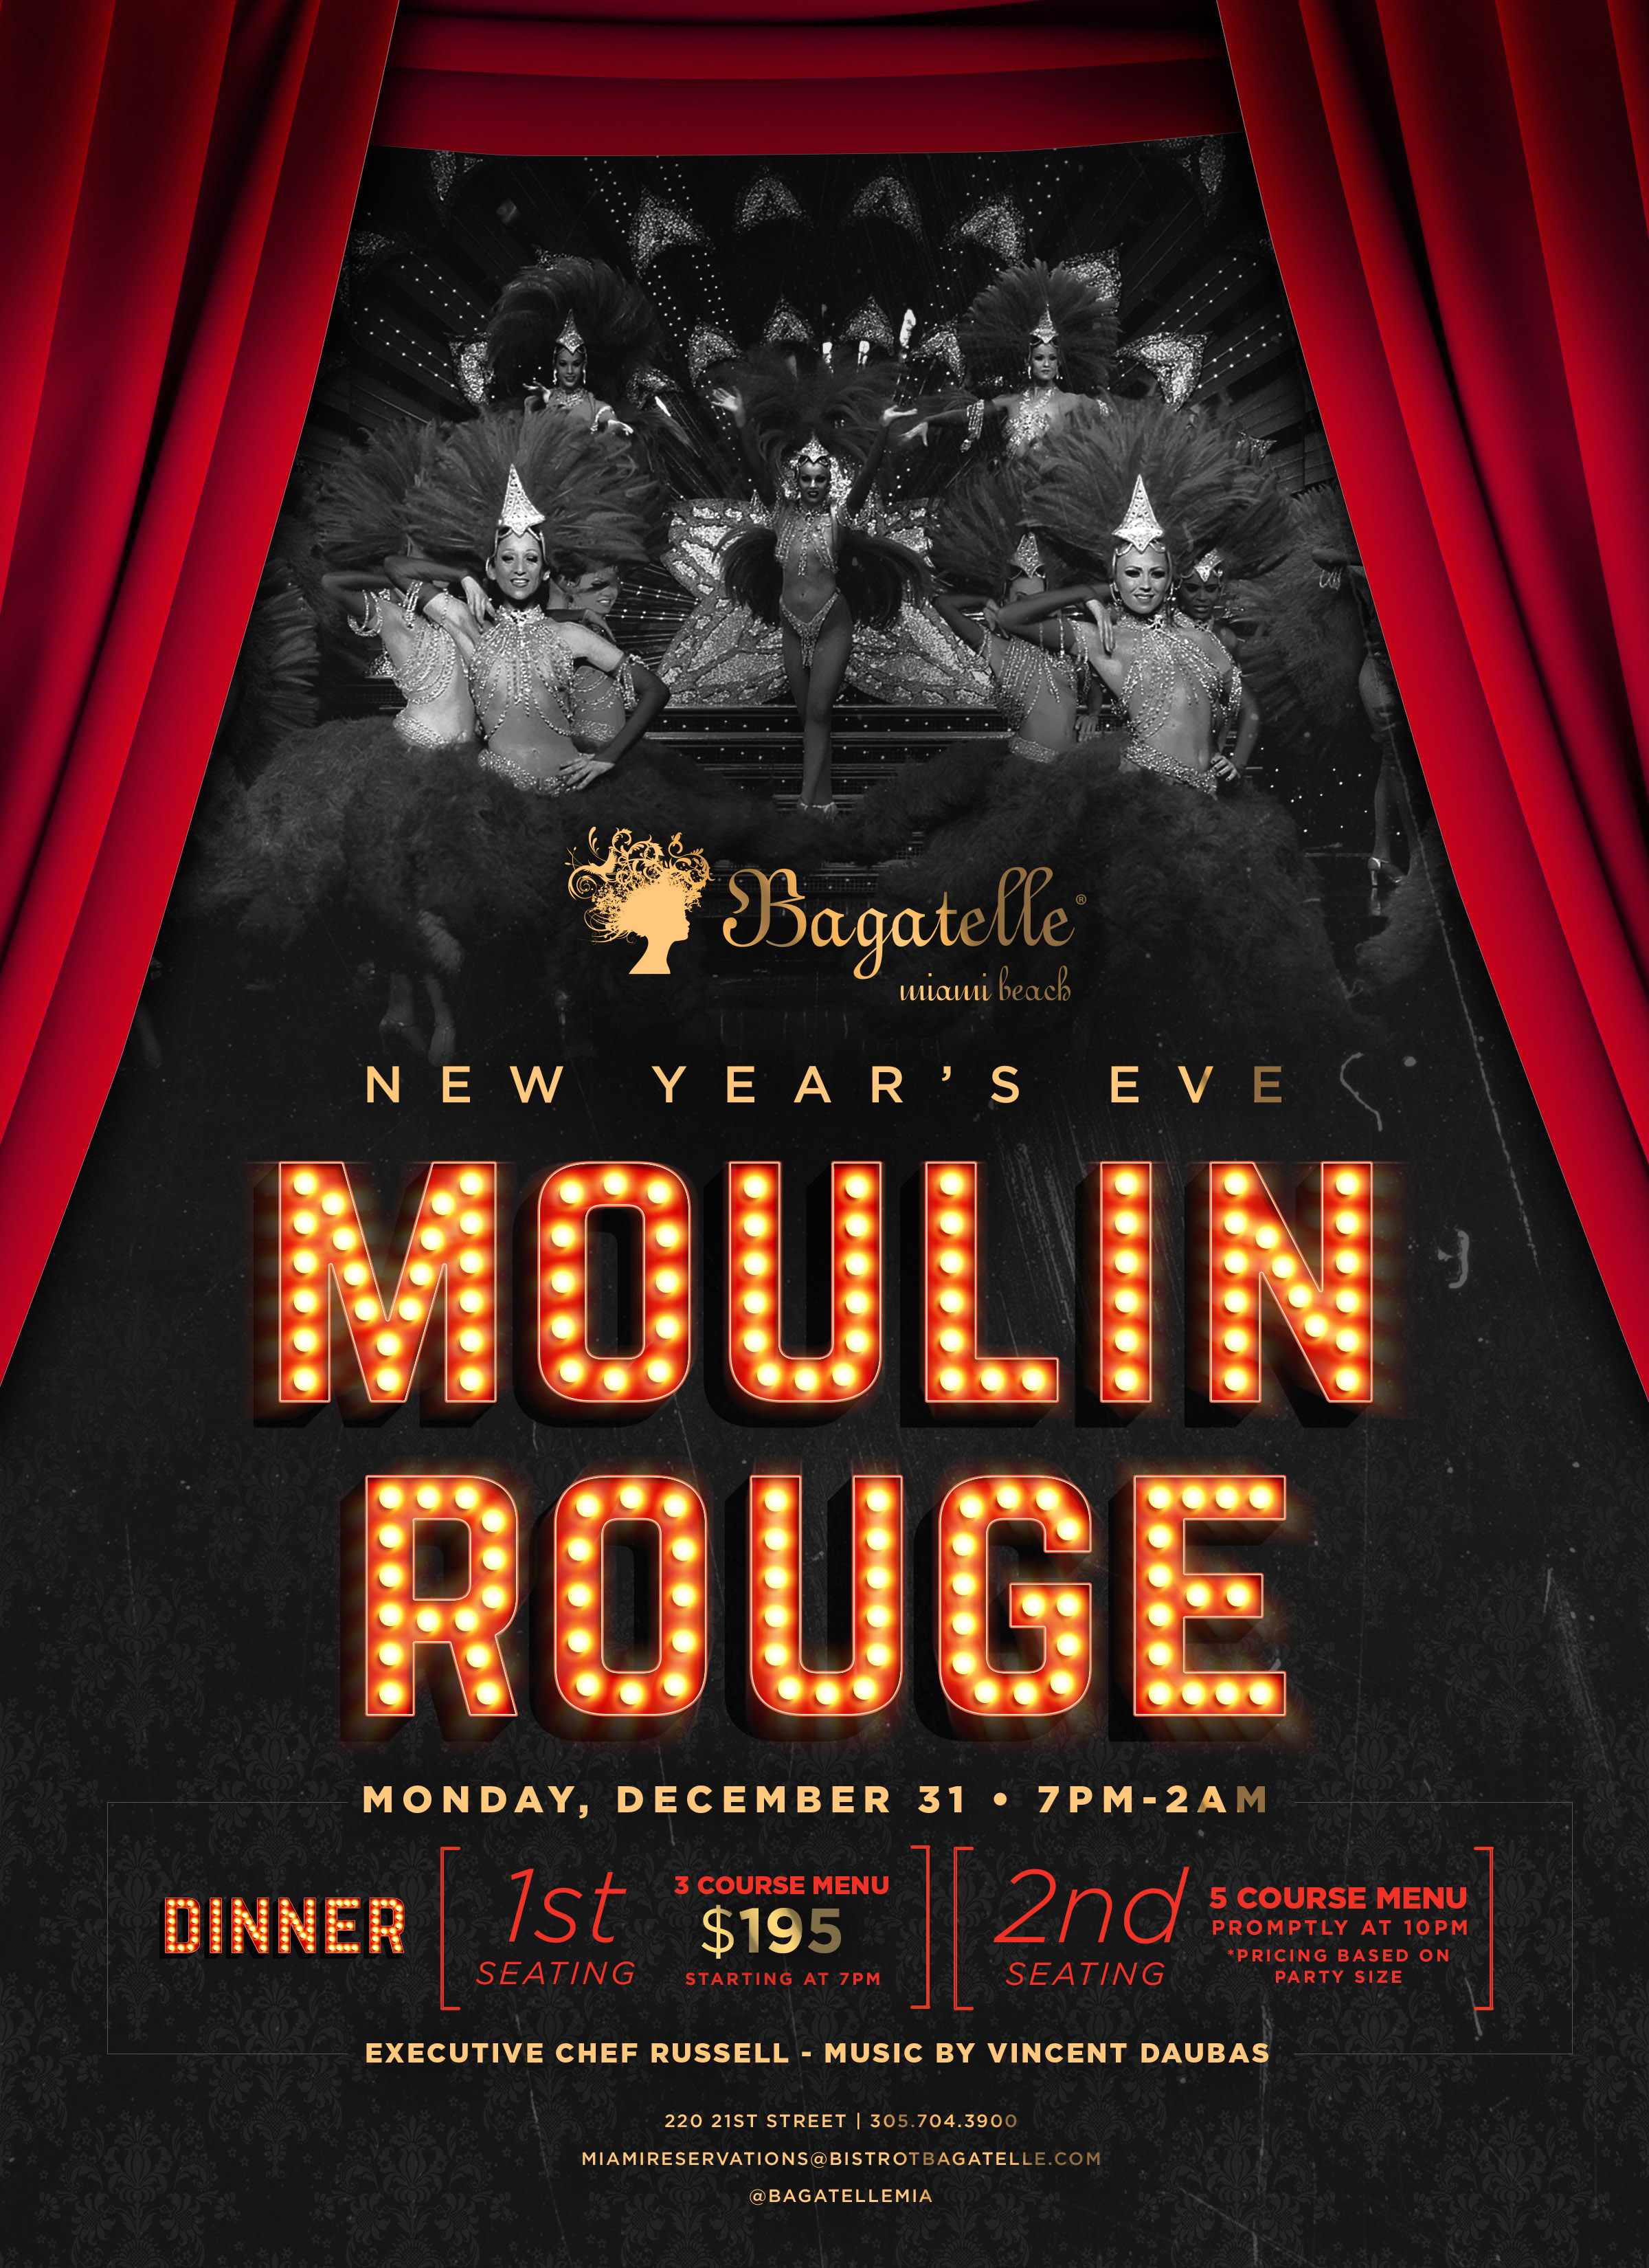 Valentino Cucina Italiana Menu Prices New Year S Eve Moulin Rouge 12 31 18 The Soul Of Miami